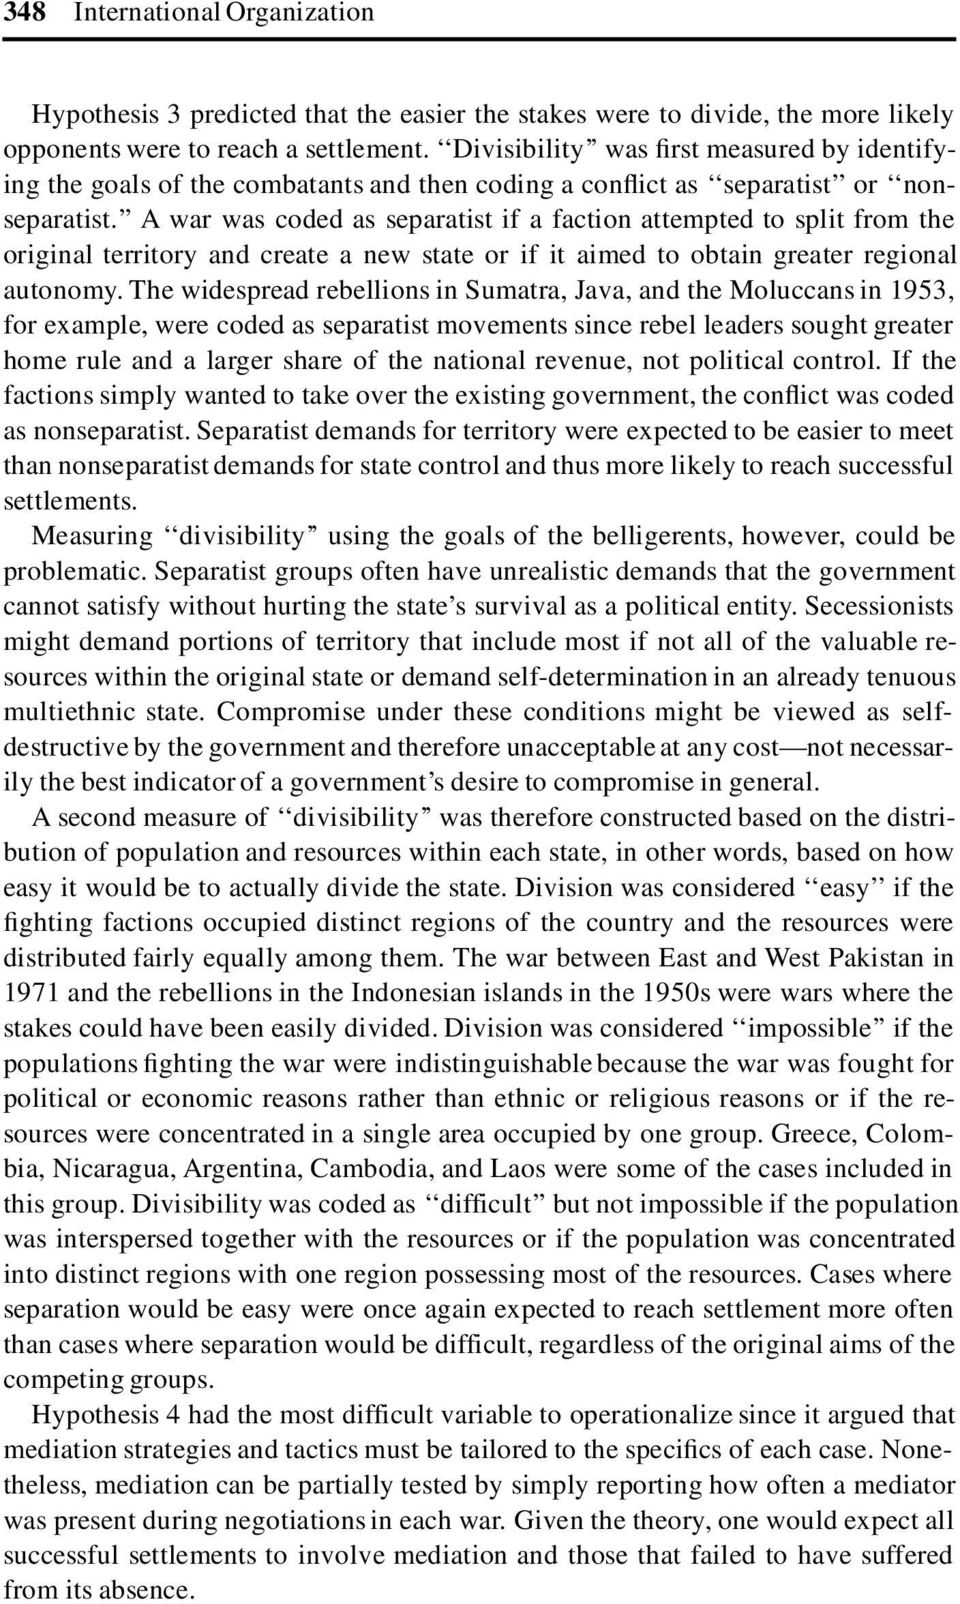 A war was coded as separatist if a faction attempted to split from the original territory and create a new state or if it aimed to obtain greater regional autonomy.